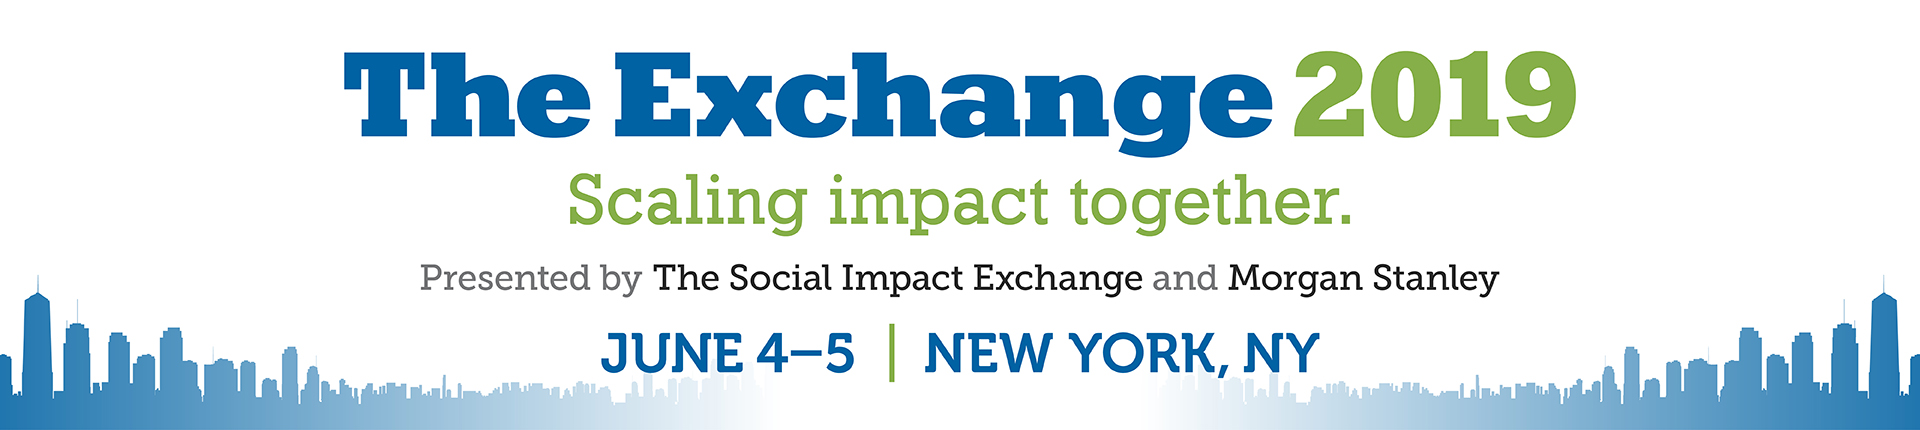 The Exchange 2019: Scaling Impact Together. Presented by The Social Impact Exchange and Morgan Stanley